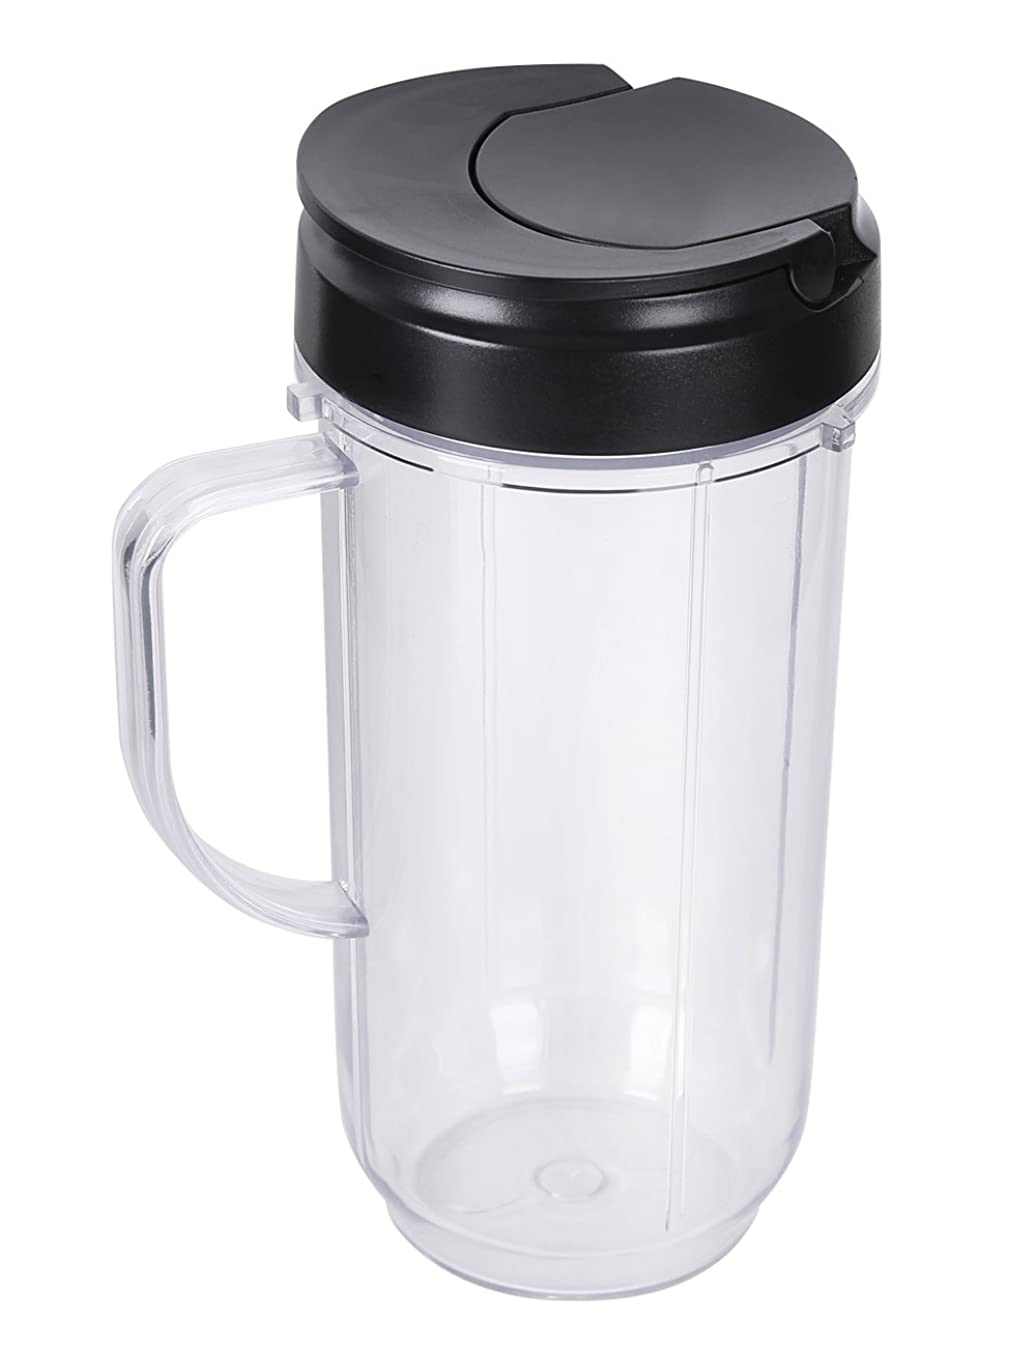 Yesurprise Replacement Part Flip Top Lids + 22oz Tall cups for 250w Magic Bullet Mugs & Cups Blender Juicer Mixer